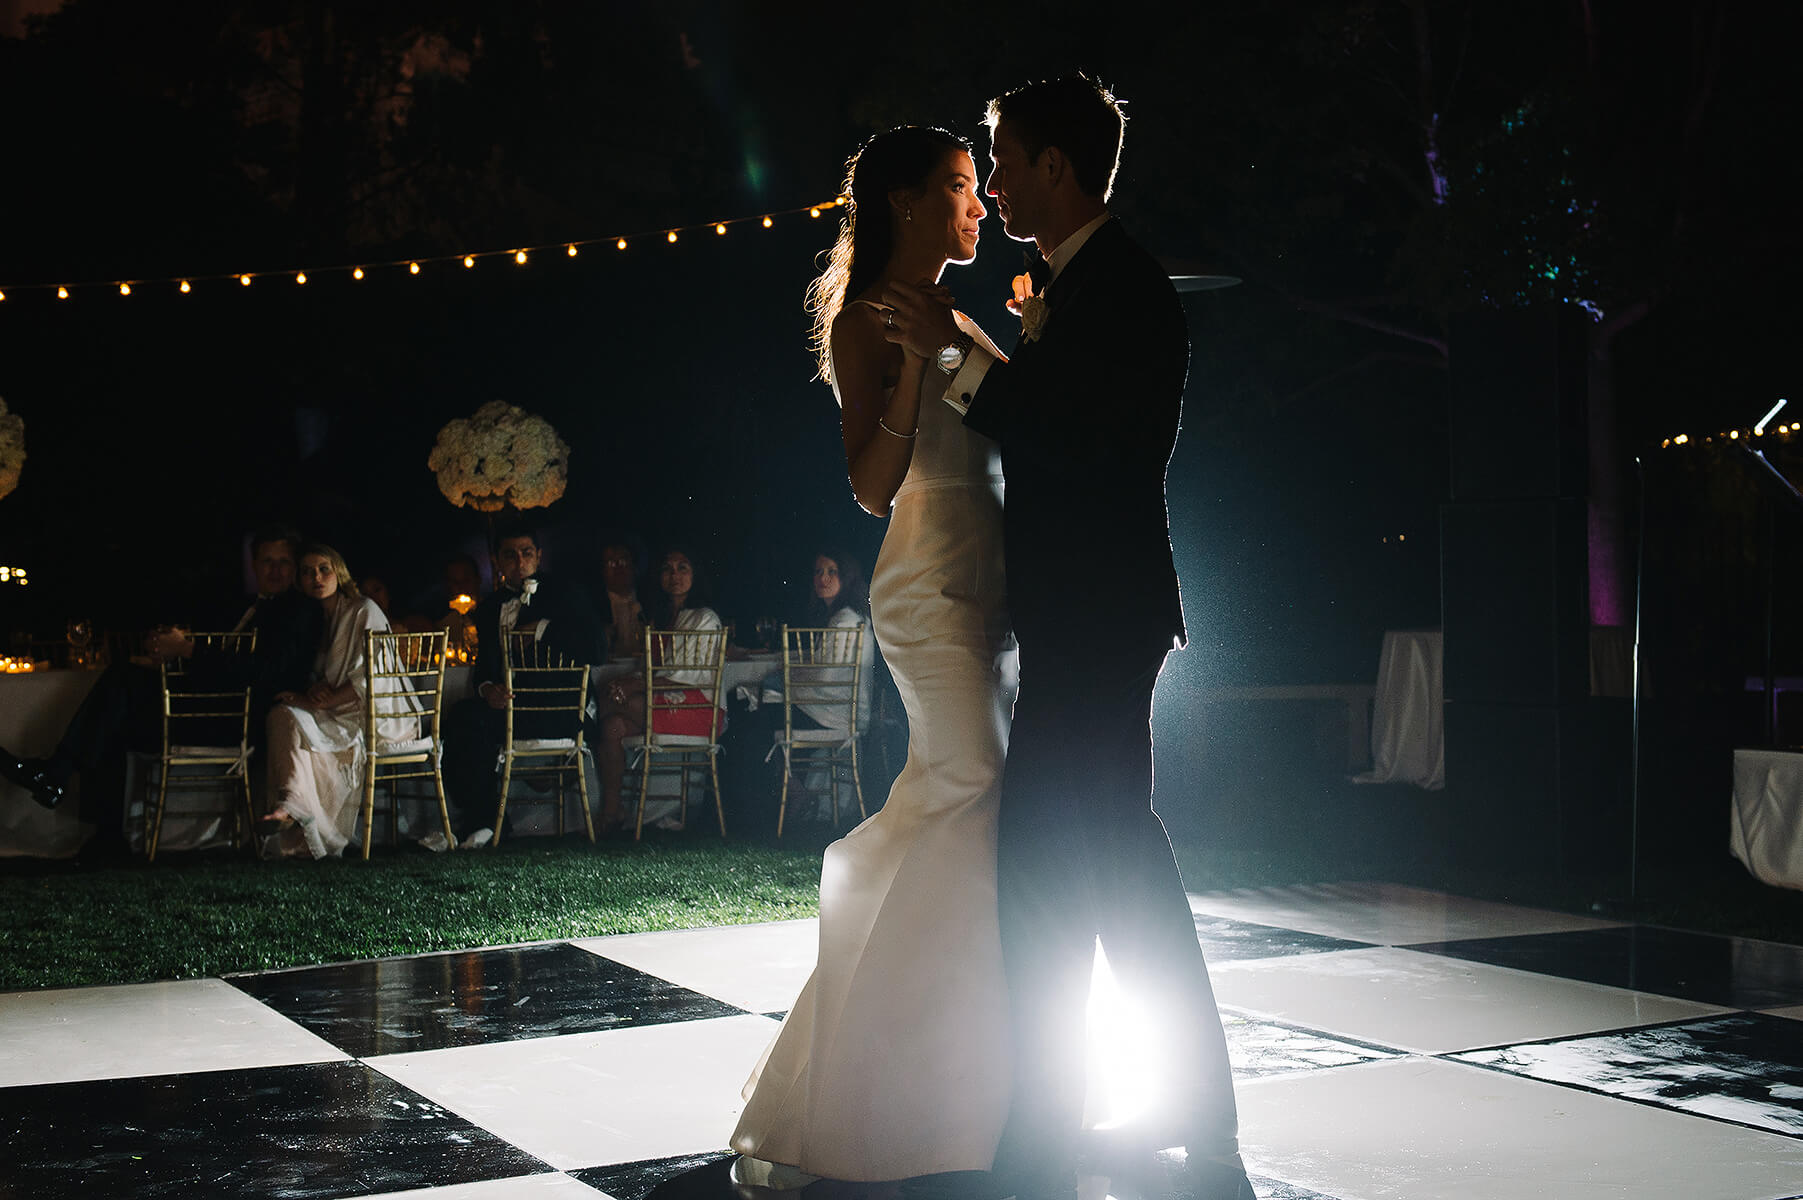 bride and groom first dance on checkerboard dance floor at san diego museum of art